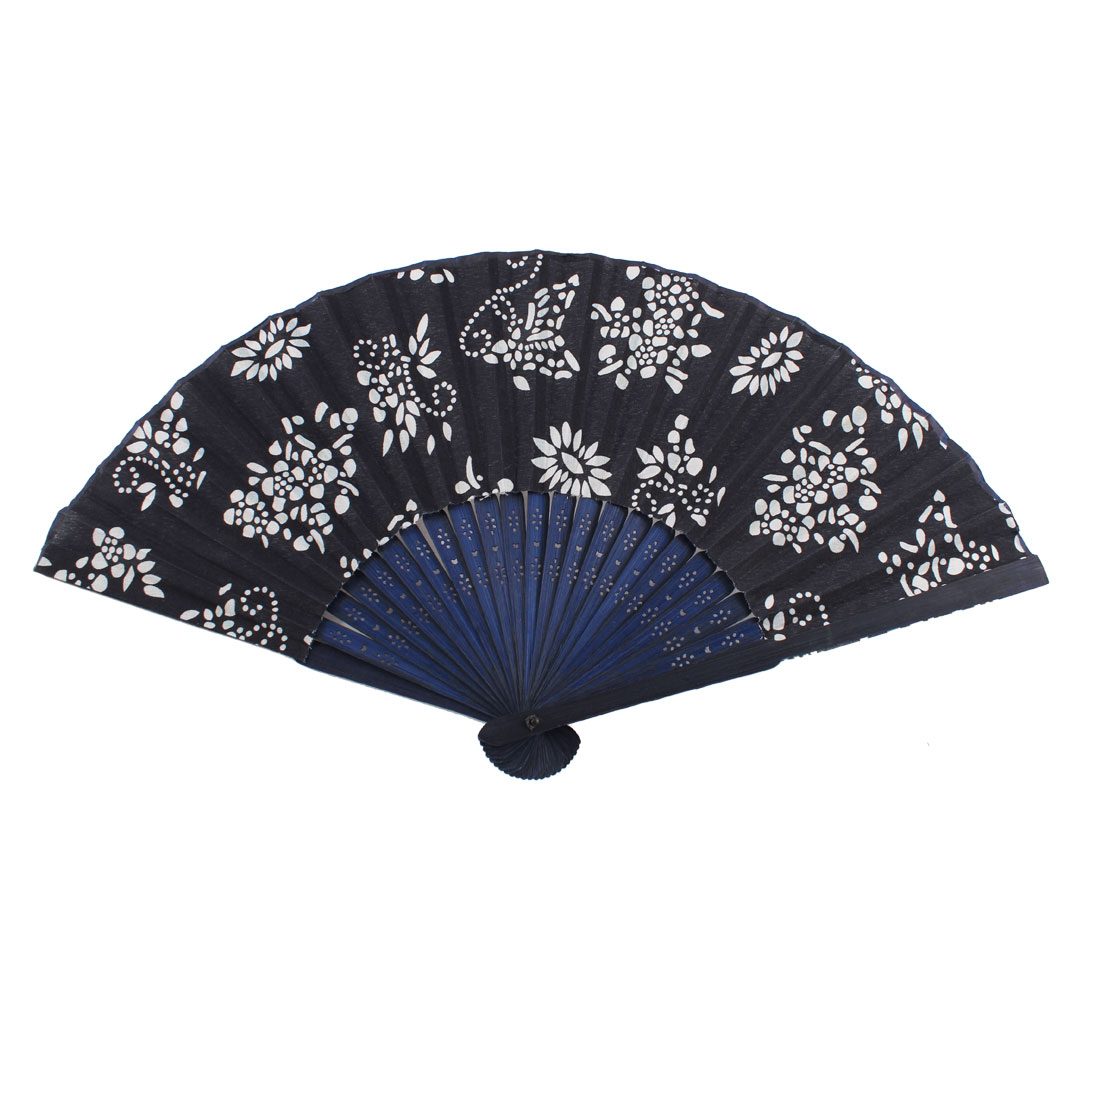 Bamboo Handle Fabric White Flower Pattern Folding Hand Fan Navy Blue